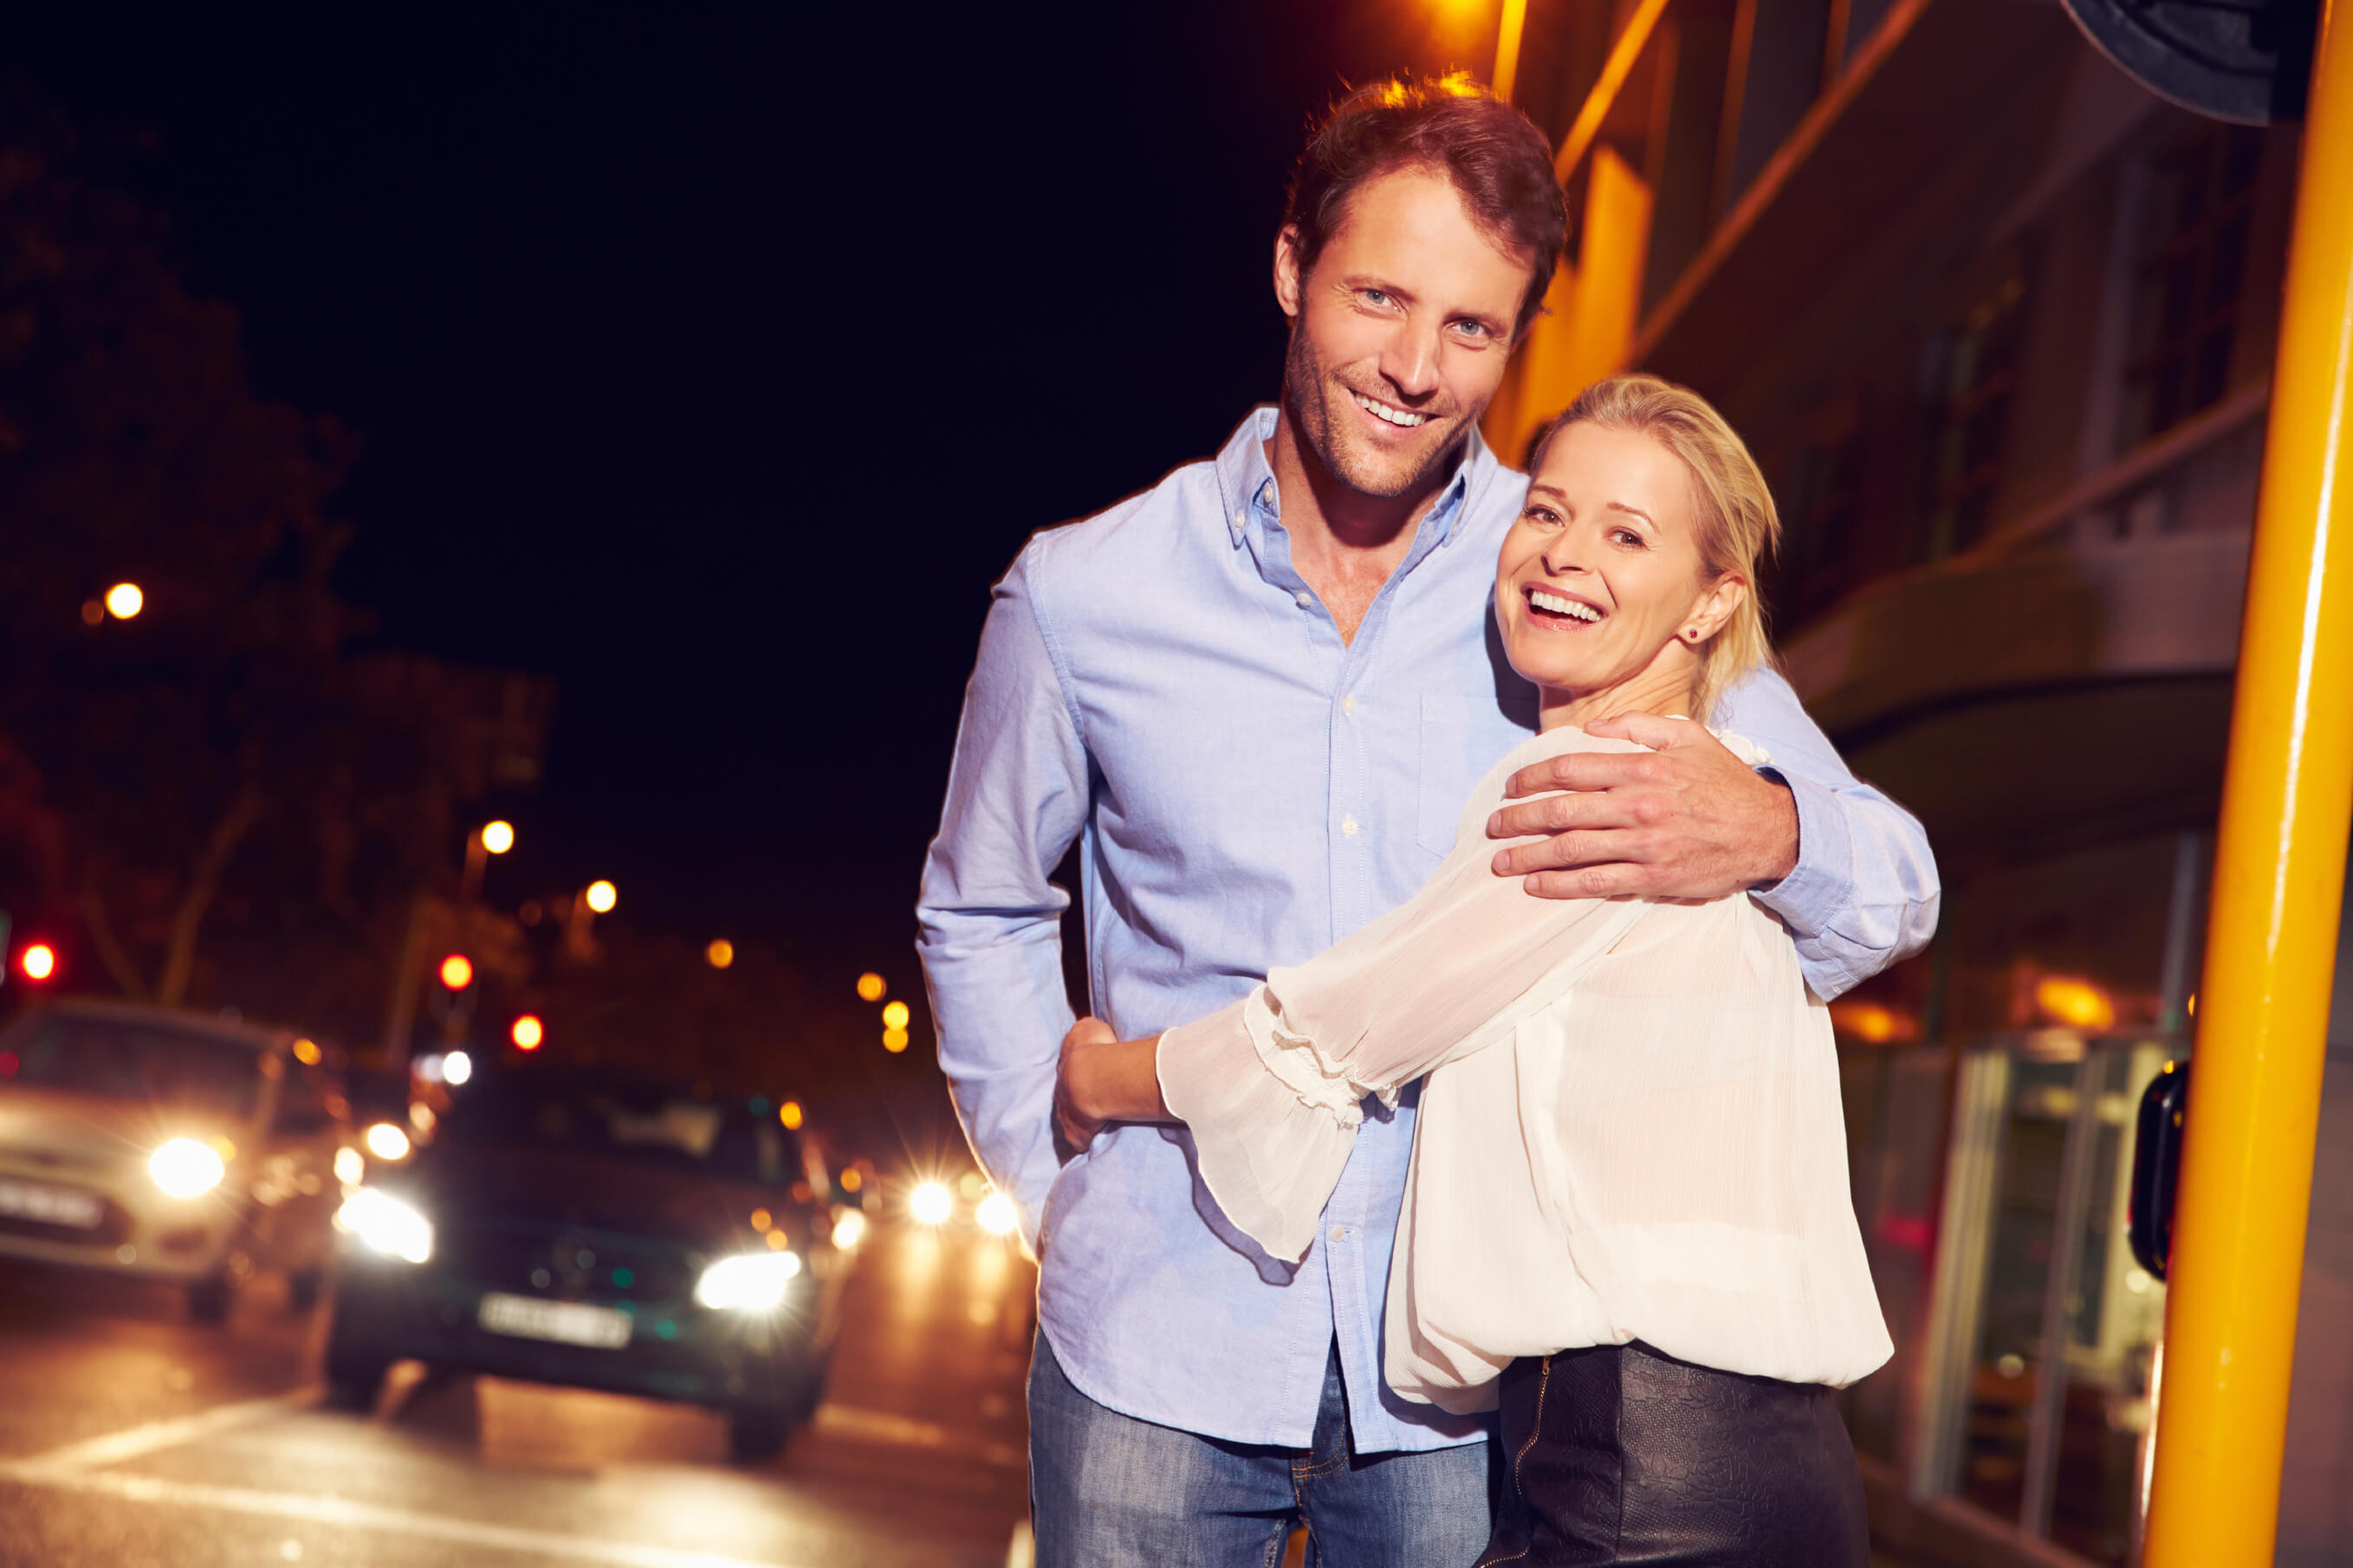 Exclusive dating matchmaking firms